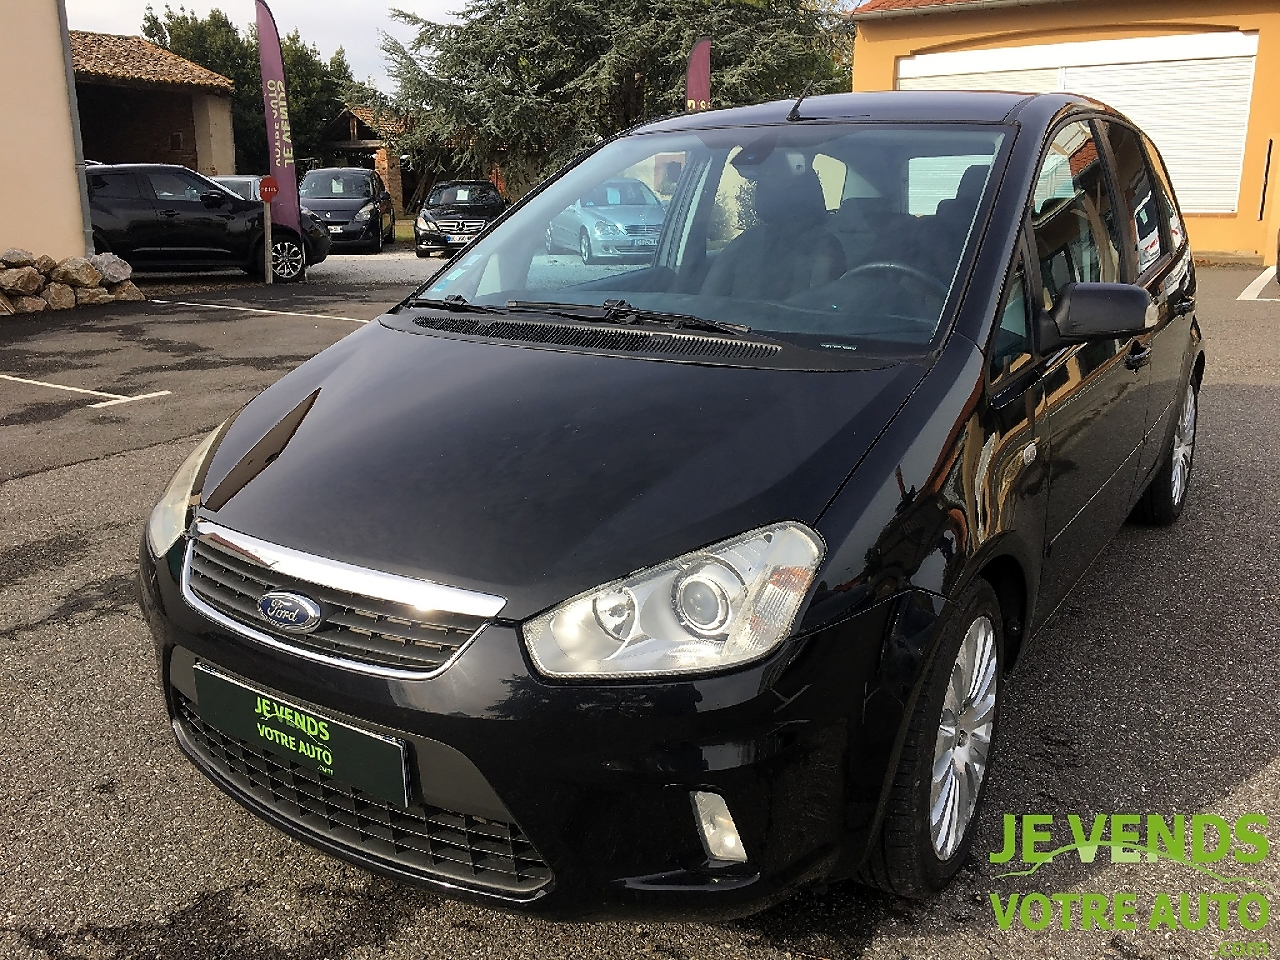 voiture ford c max 2 0 tdci 136ch titanium occasion diesel 2007 160500 km 4800. Black Bedroom Furniture Sets. Home Design Ideas